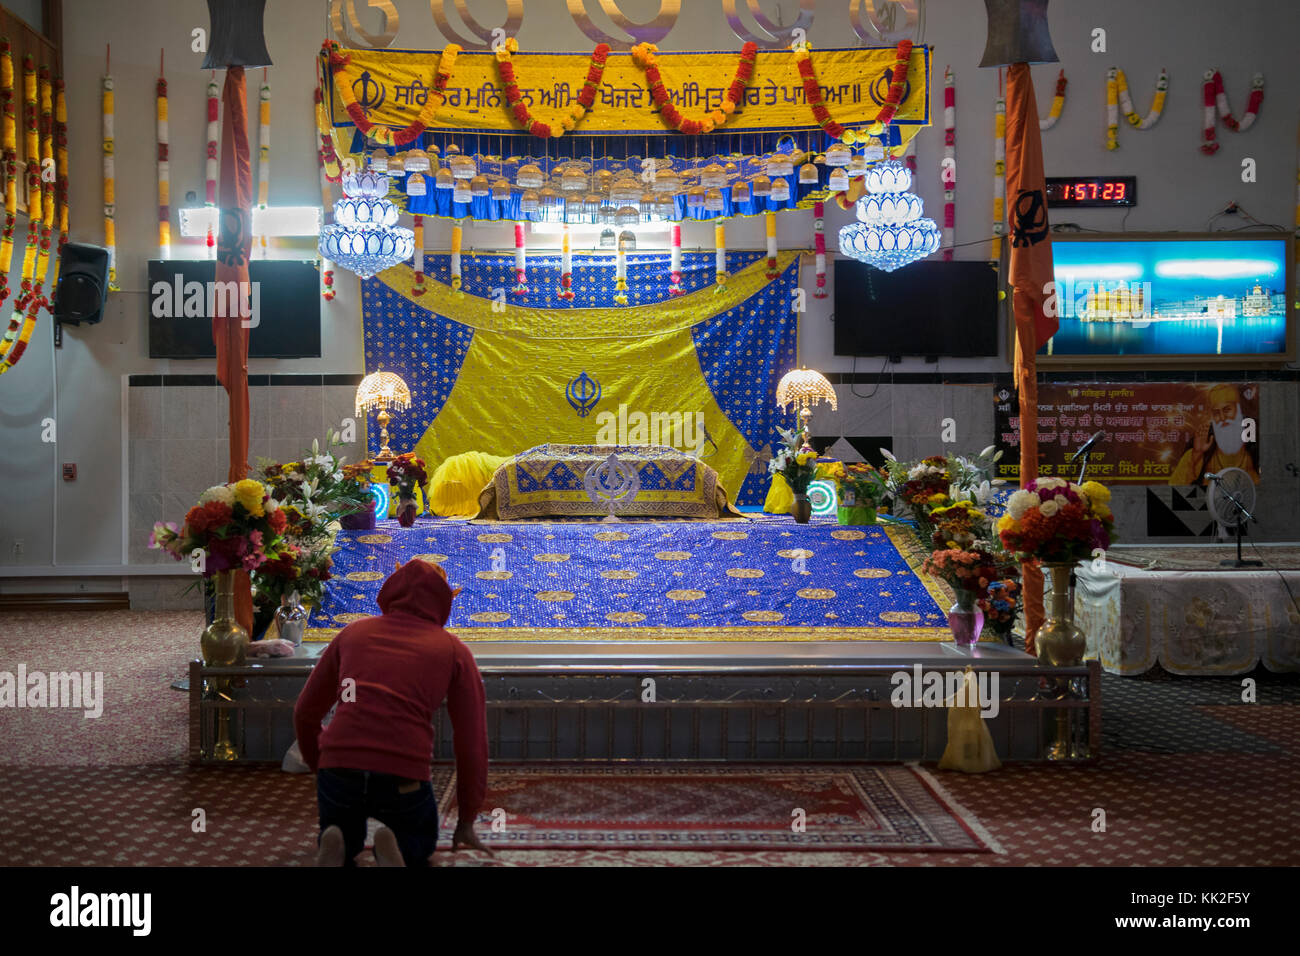 A single worshiper at the Baba Makhan Shah Lobana Sikh Center on 101 Avenue in Richmond Hill, Queens, New York City - Stock Image